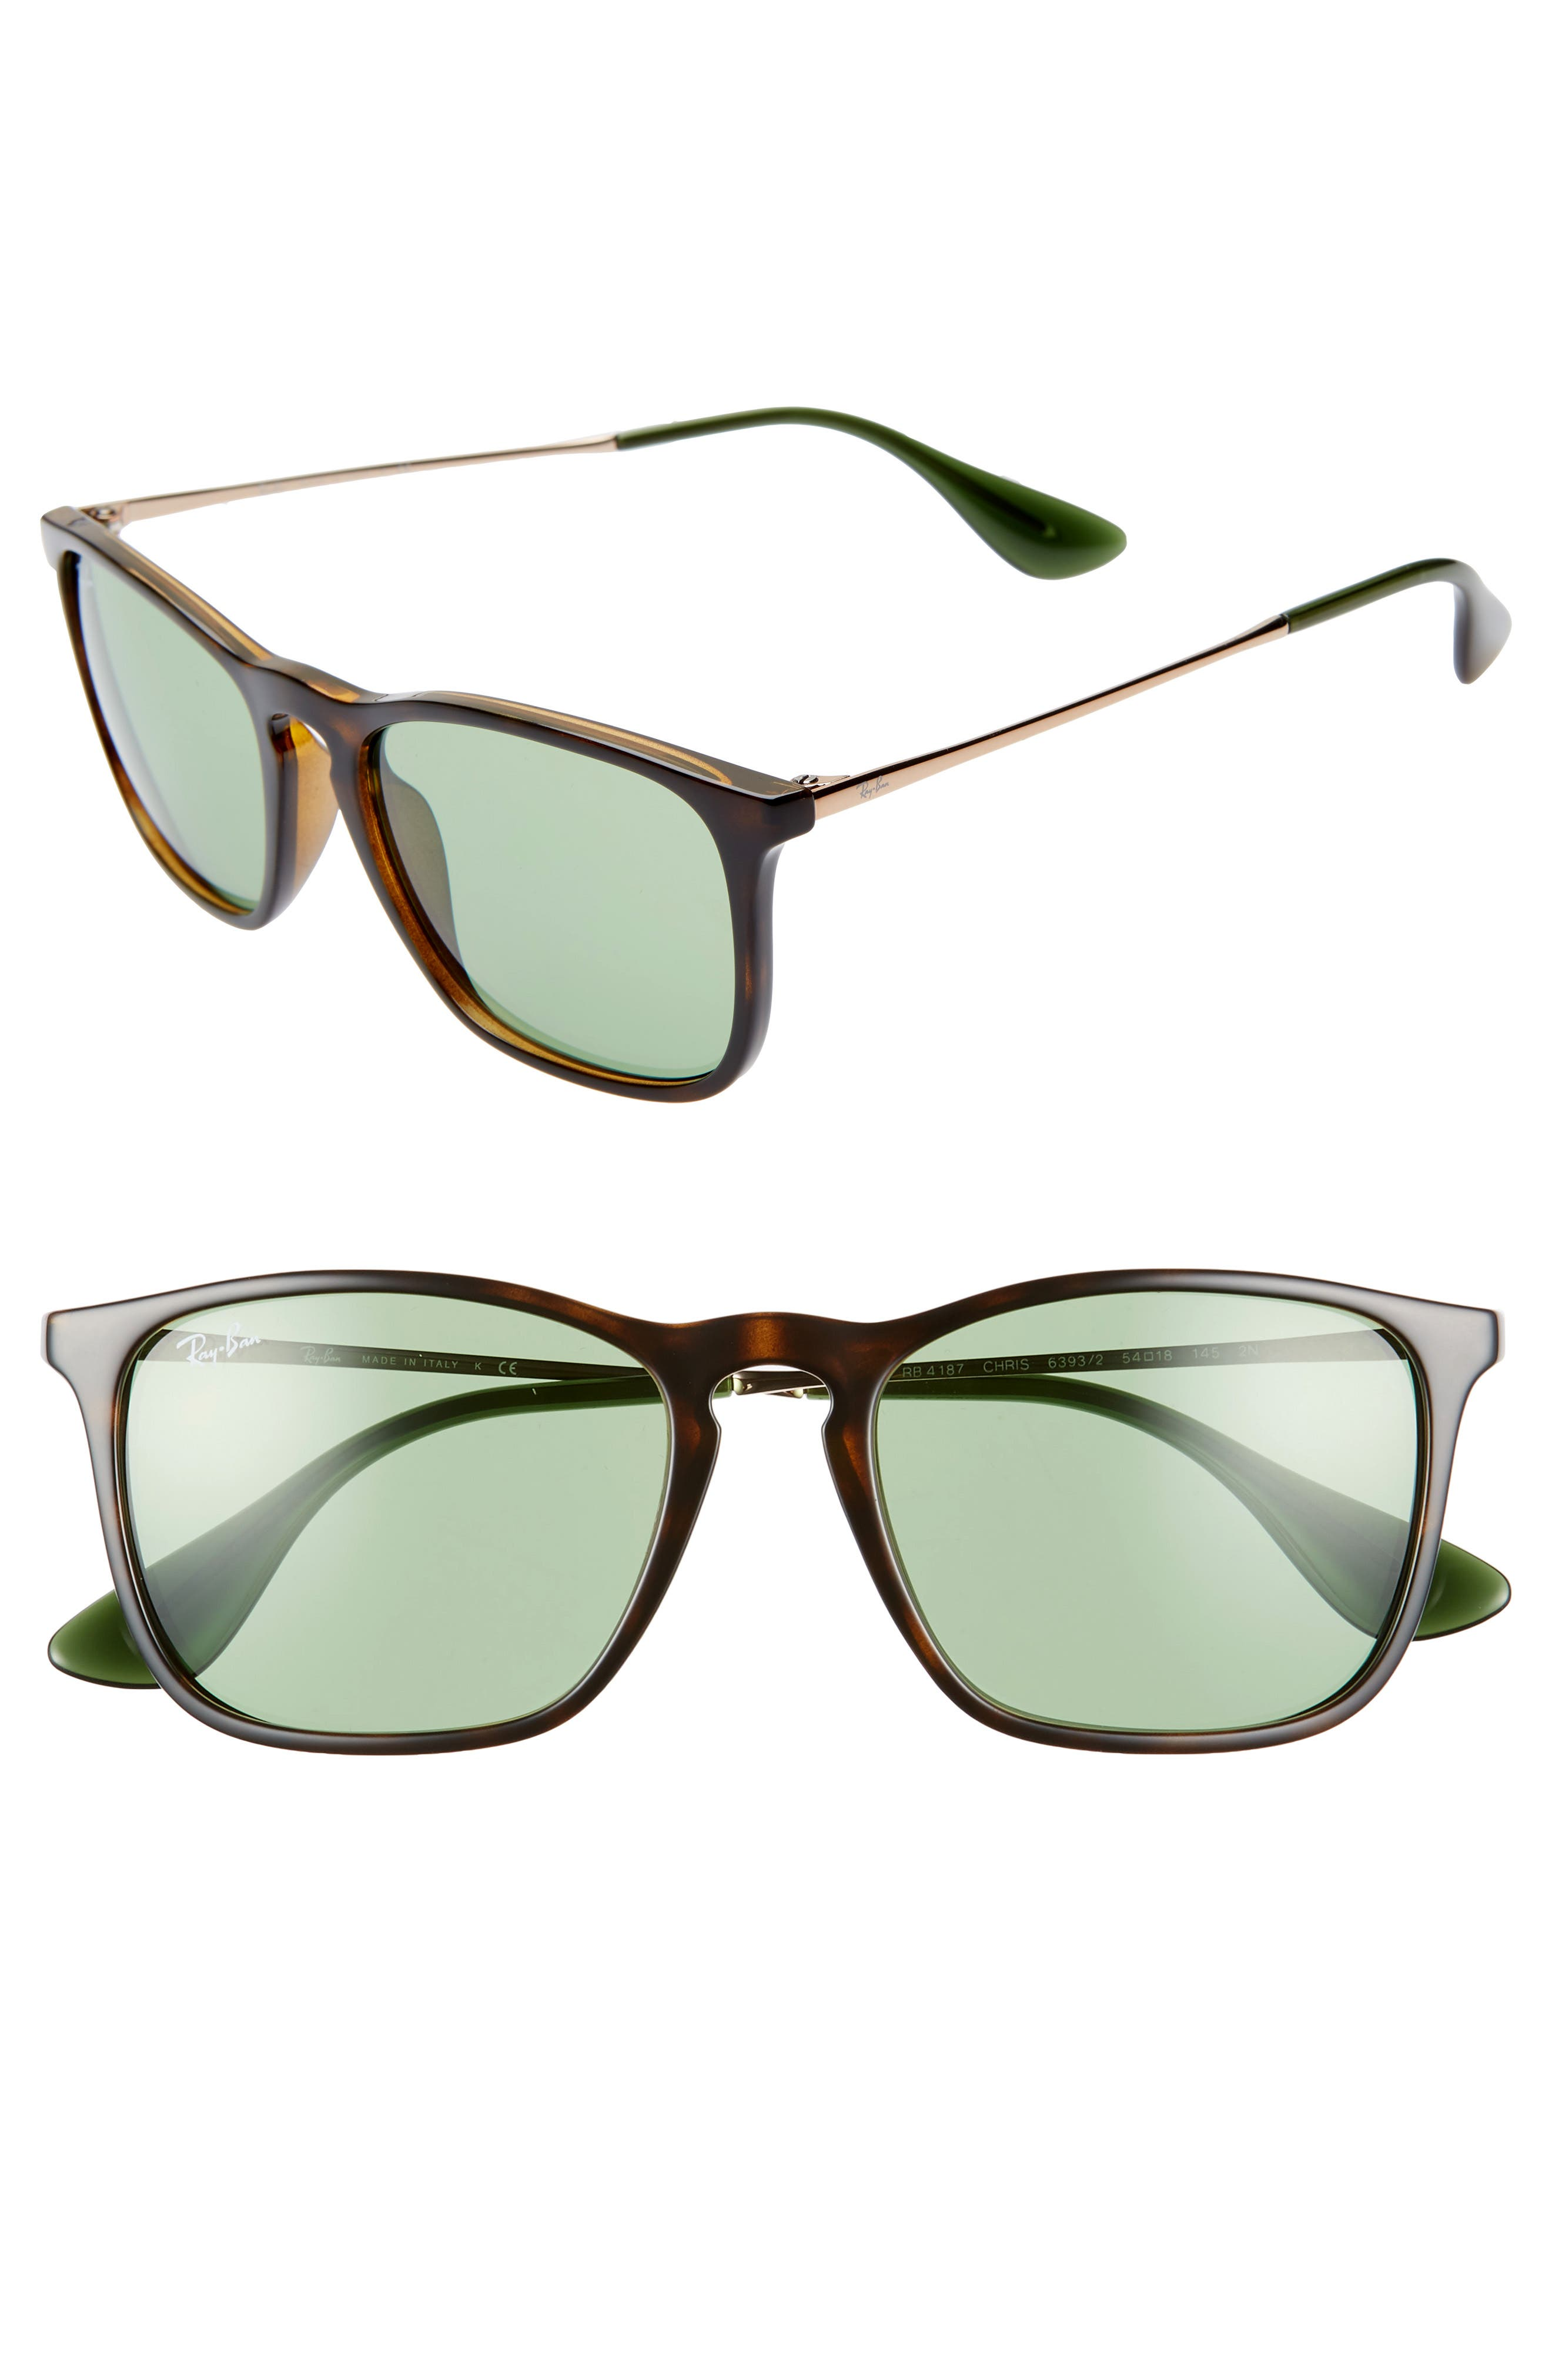 Ray-Ban Youngster 5m Square Keyhole Sunglasses - Tortoise/ Green Solid